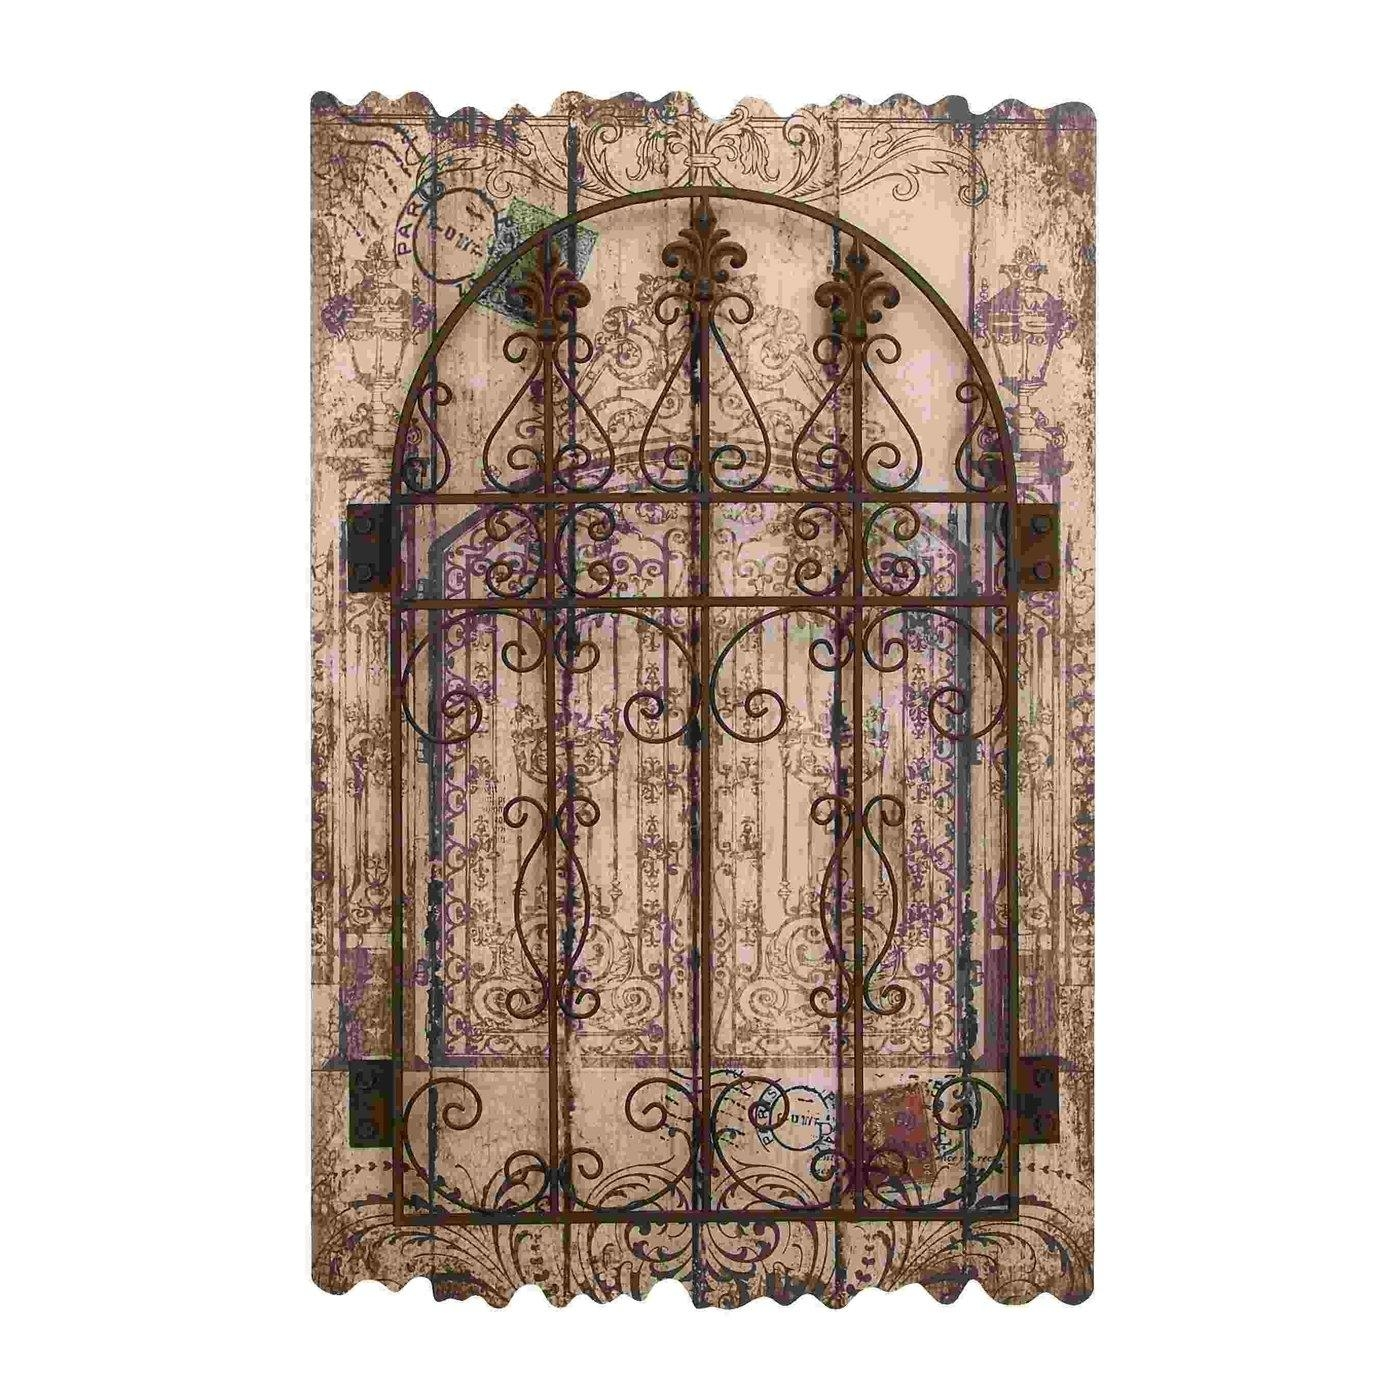 Wall Art Designs: Rustic Wood And Metal Wall Art Transitional With Regard To Wood And Iron Wall Art (Image 15 of 20)